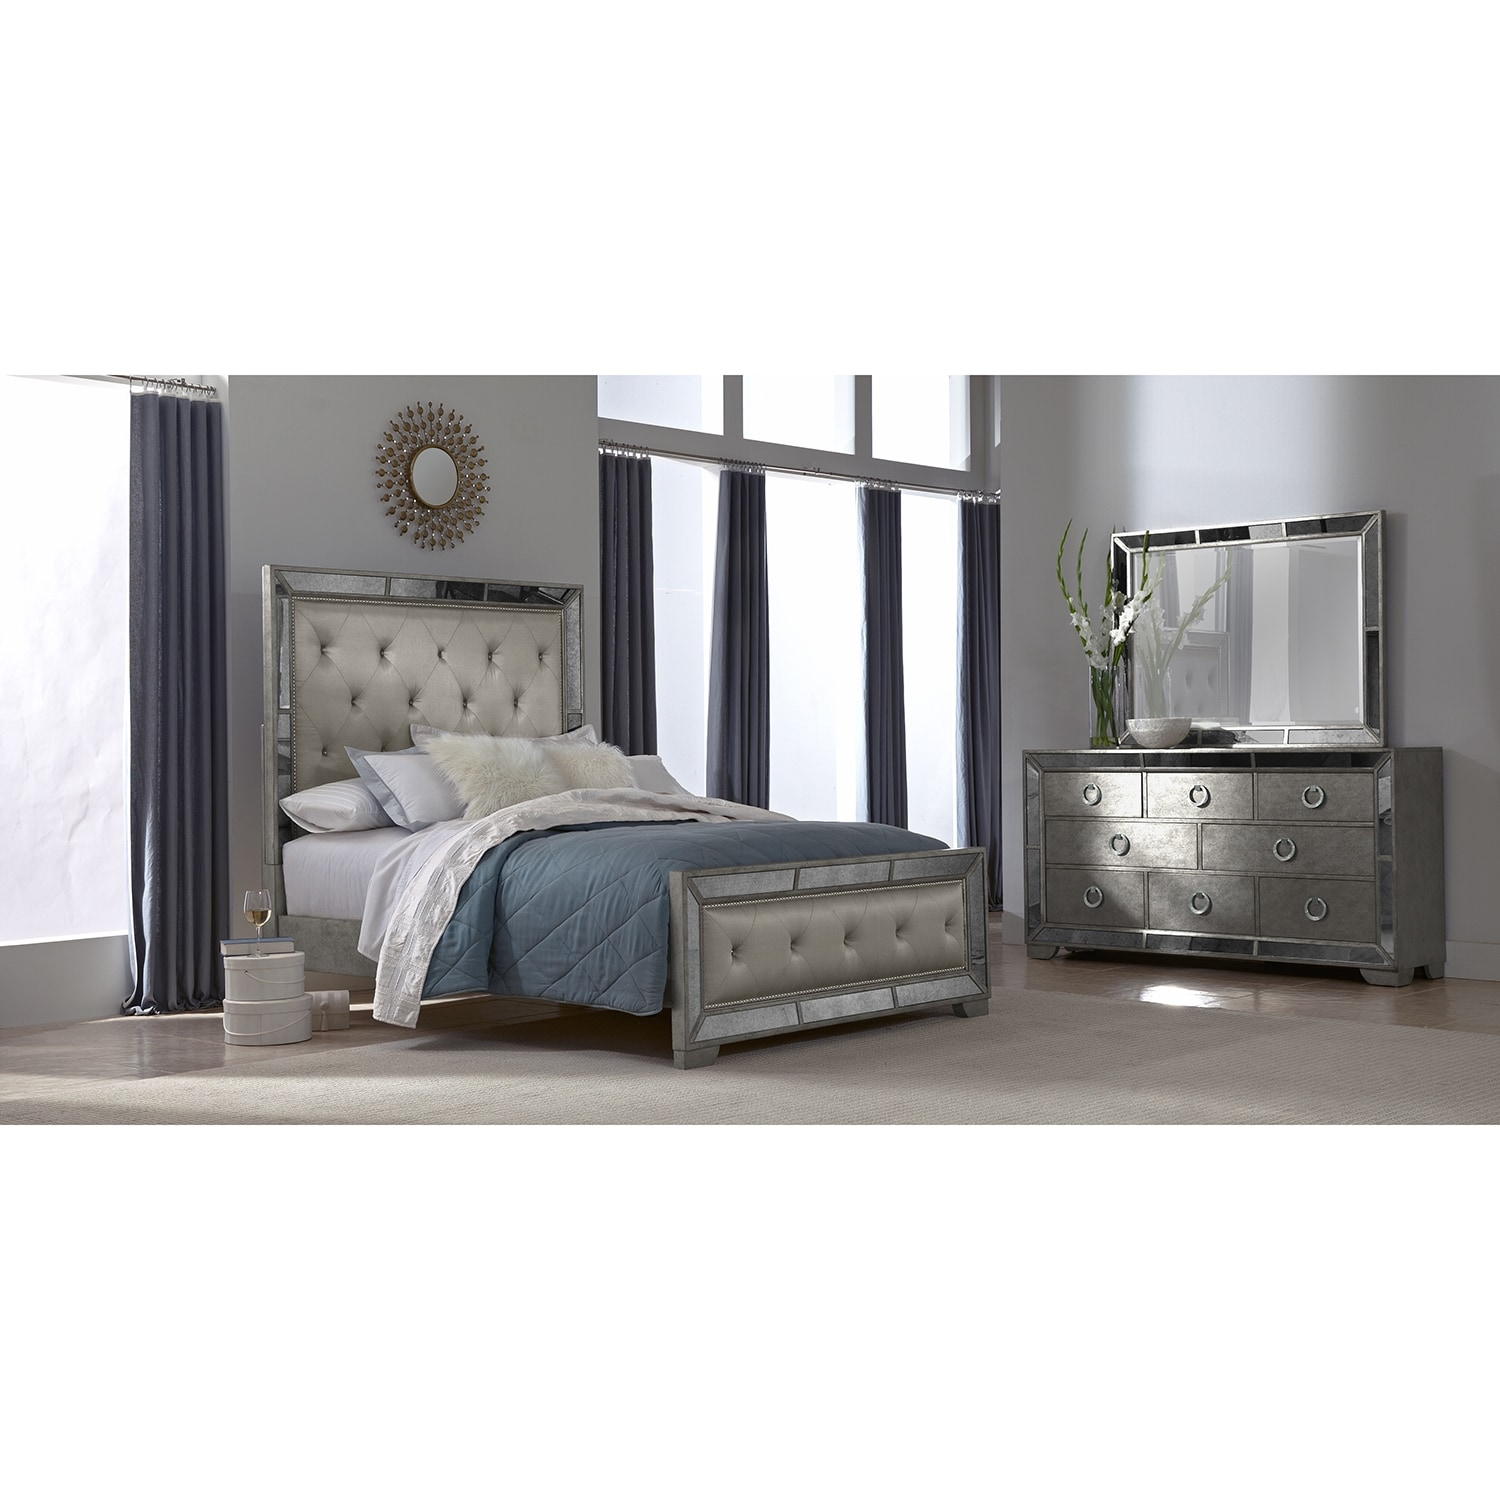 Angelina 5 pc queen bedroom american signature furniture for American furniture bedroom furniture